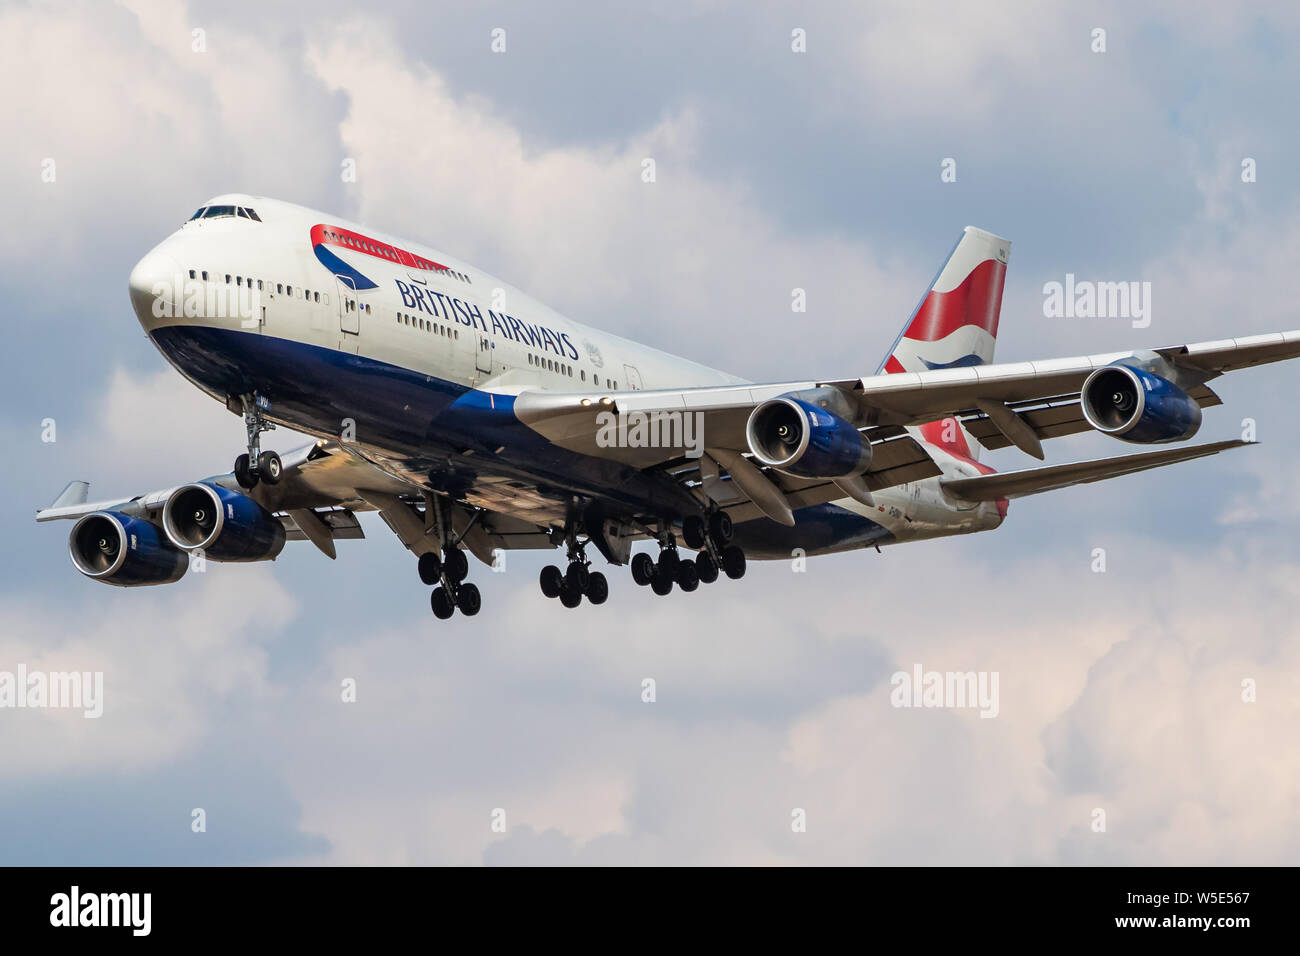 LONDON / UNITED KINGDOM - JULY 14, 2018: British Airways Boeing 747-400 G-CIVU passenger plane landing at London Heathrow Airport Stock Photo